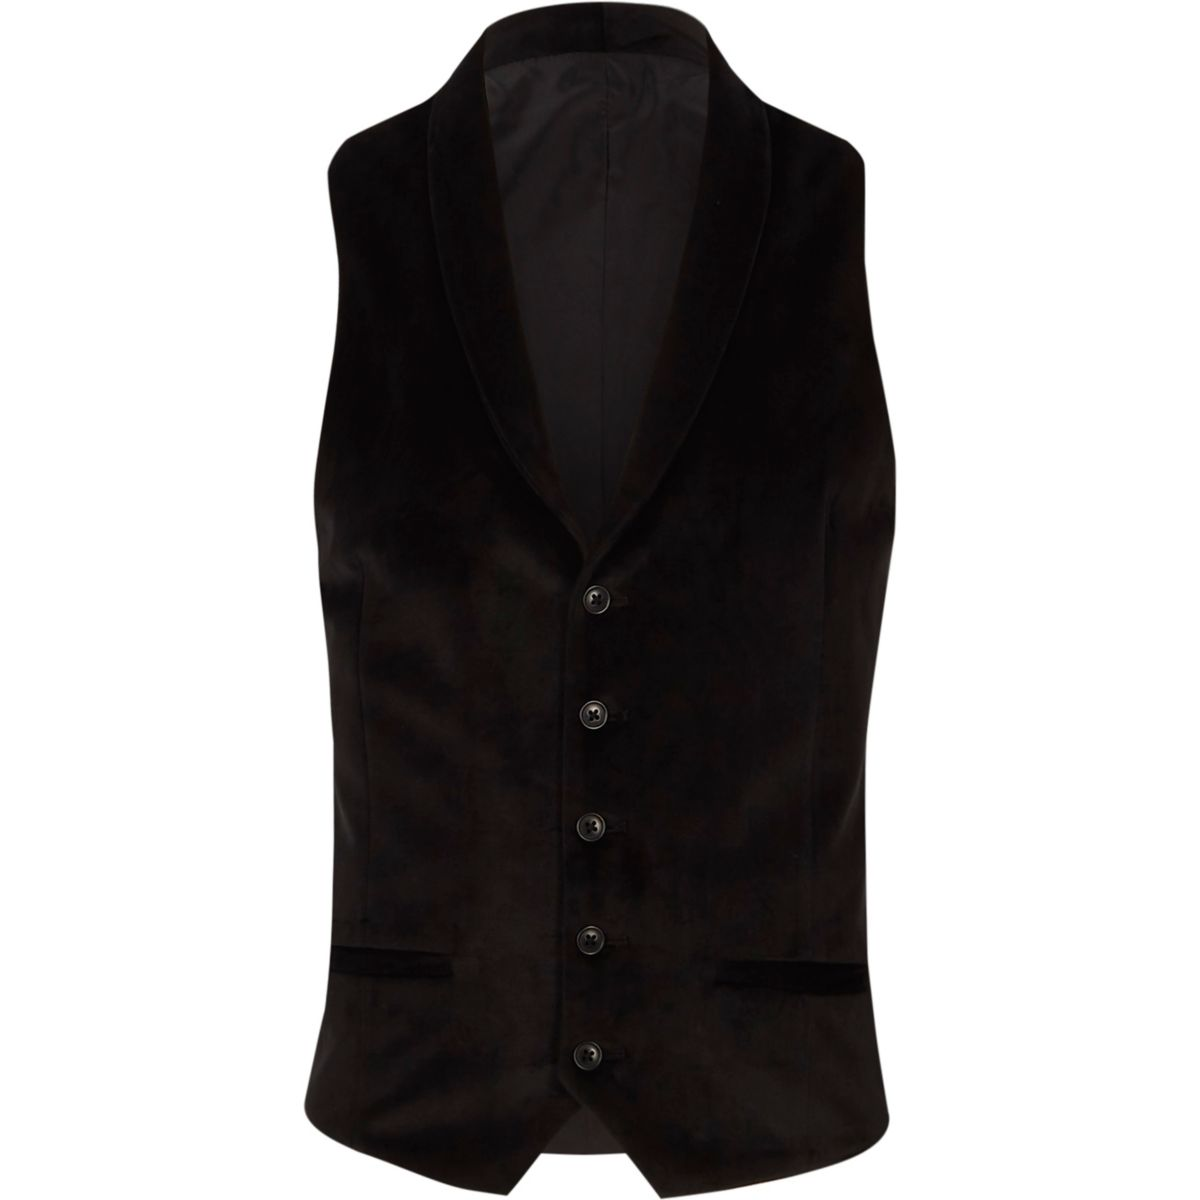 Black smart velvet shawl lapel vest